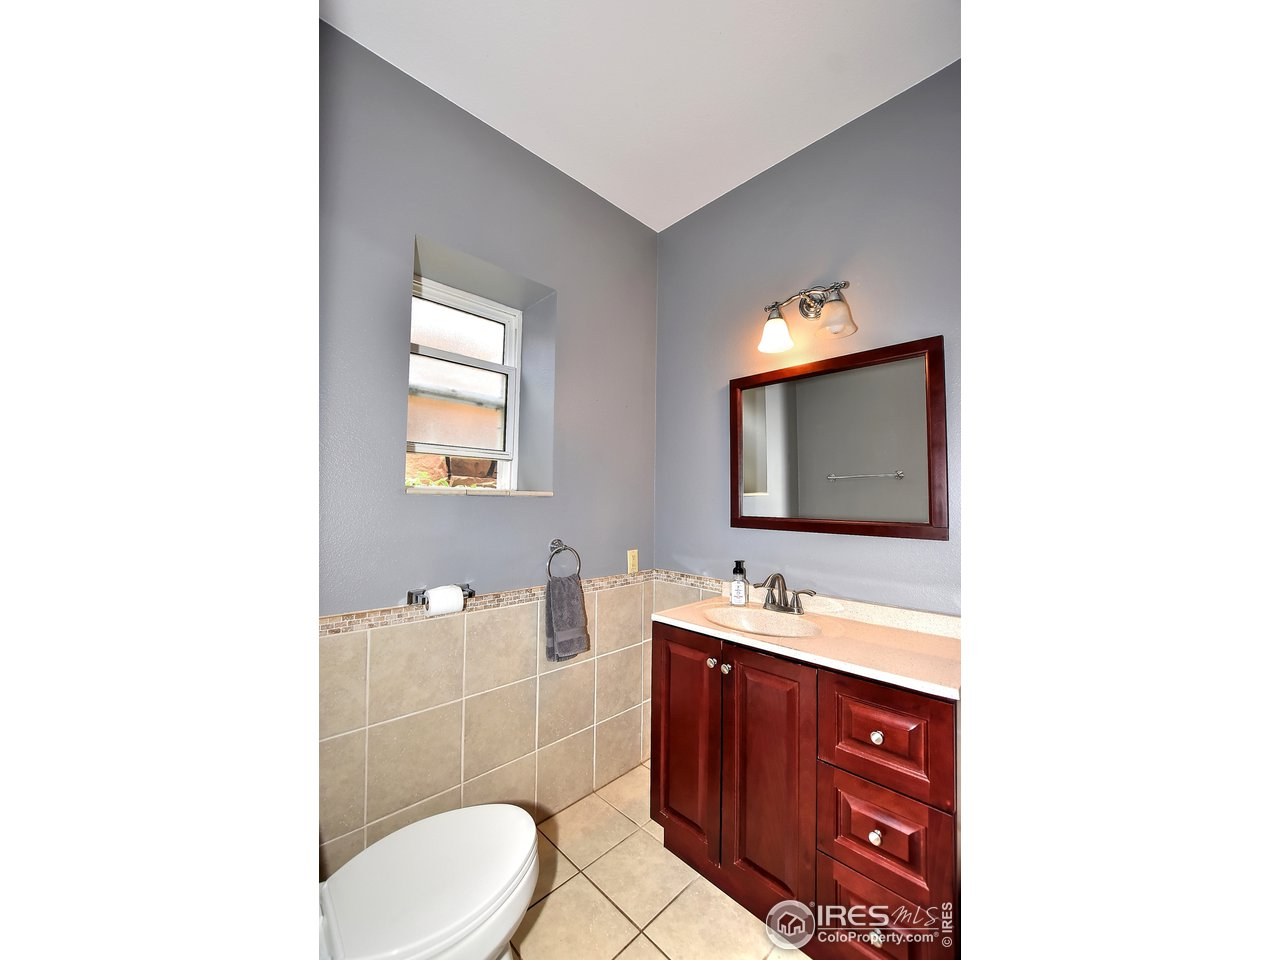 Also with attached bathroom